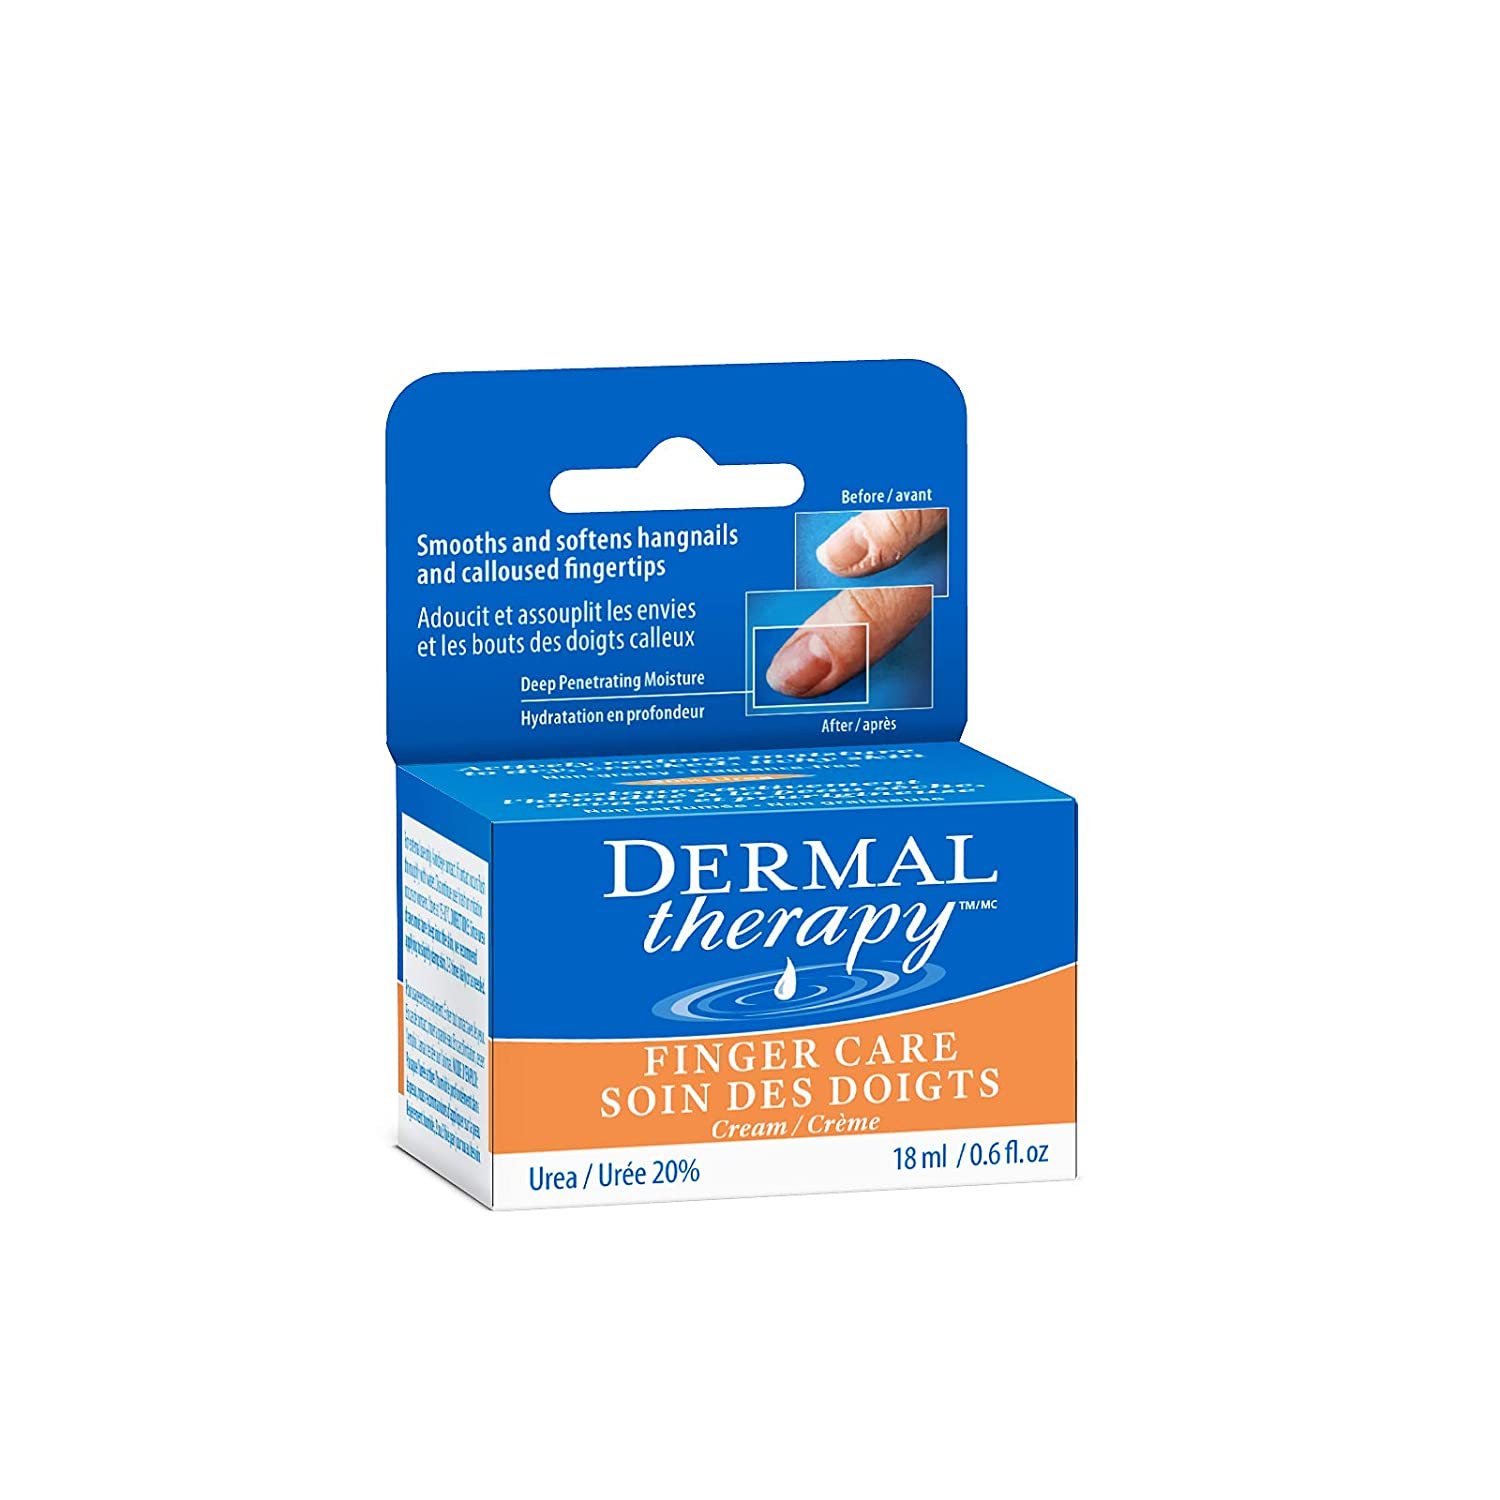 Dermal Therapy Finger Care Cream – Hydrating Treatment Repairs Skin to Heal Dry, Cracked Fingertips Resulting from Frequently Washed/Cleaned Hands | 20% Urea and 6% Alpha Hydroxy Acids | 0.6 fl. oz